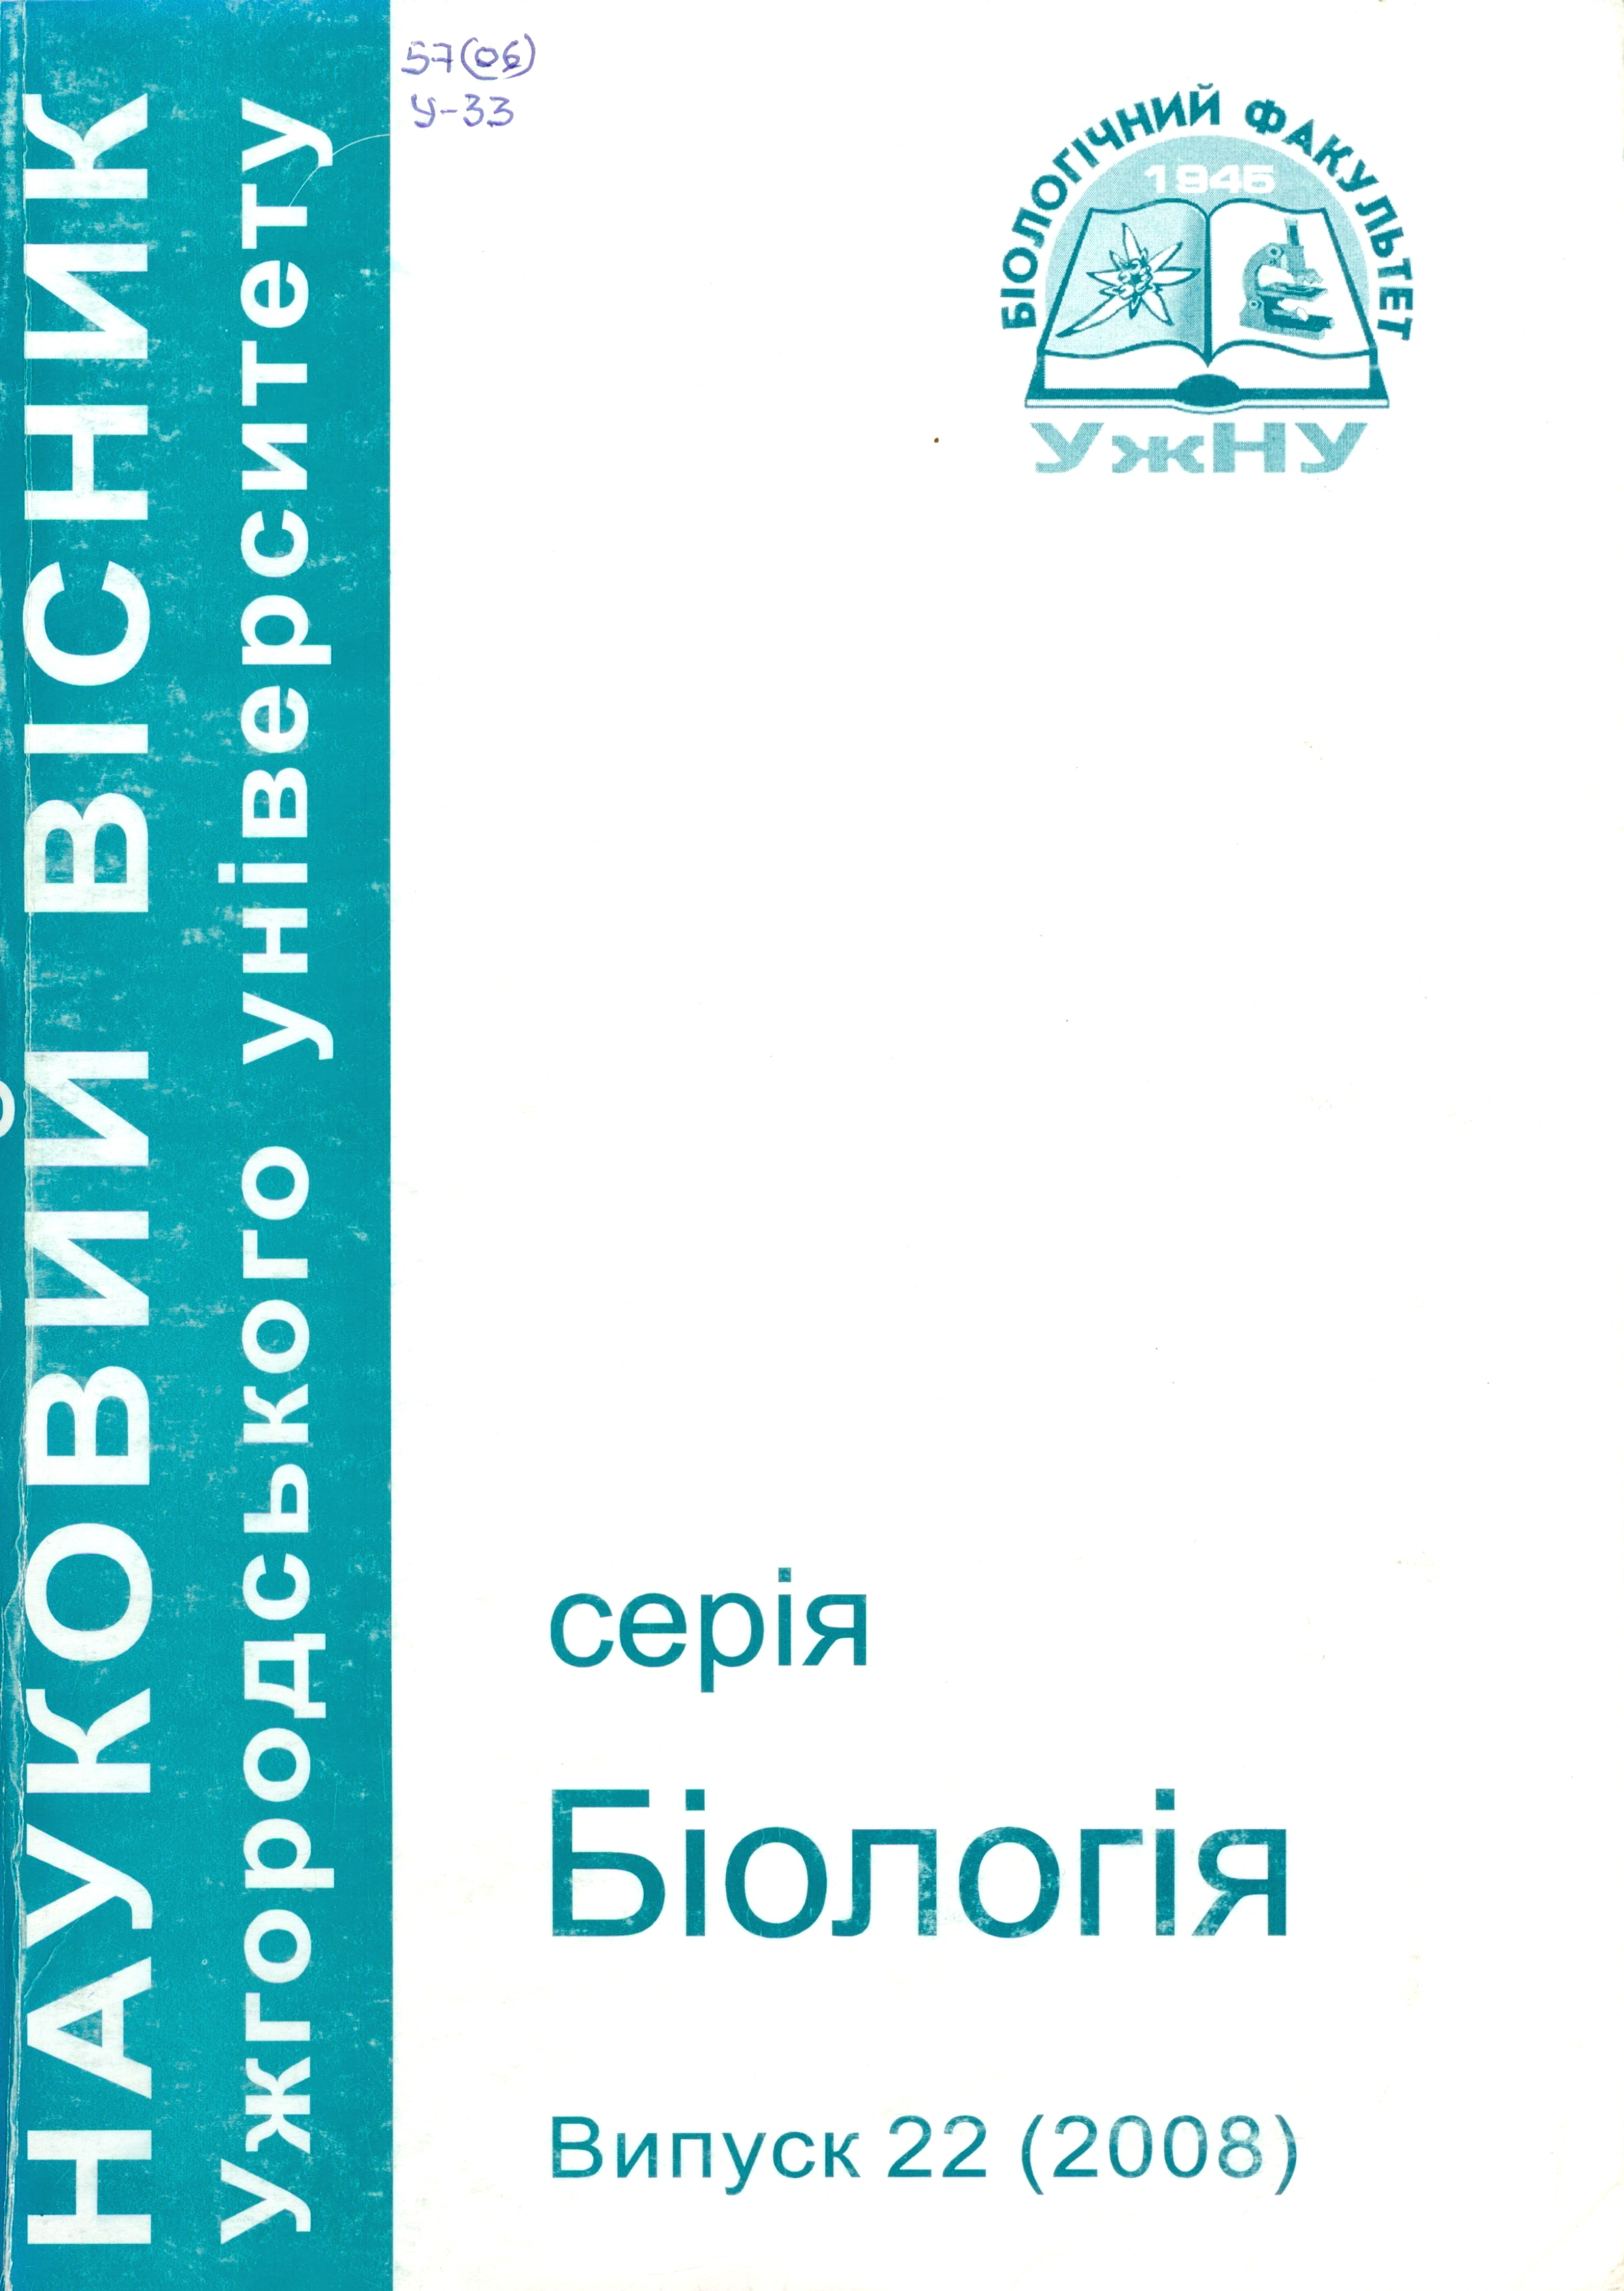 collection logo